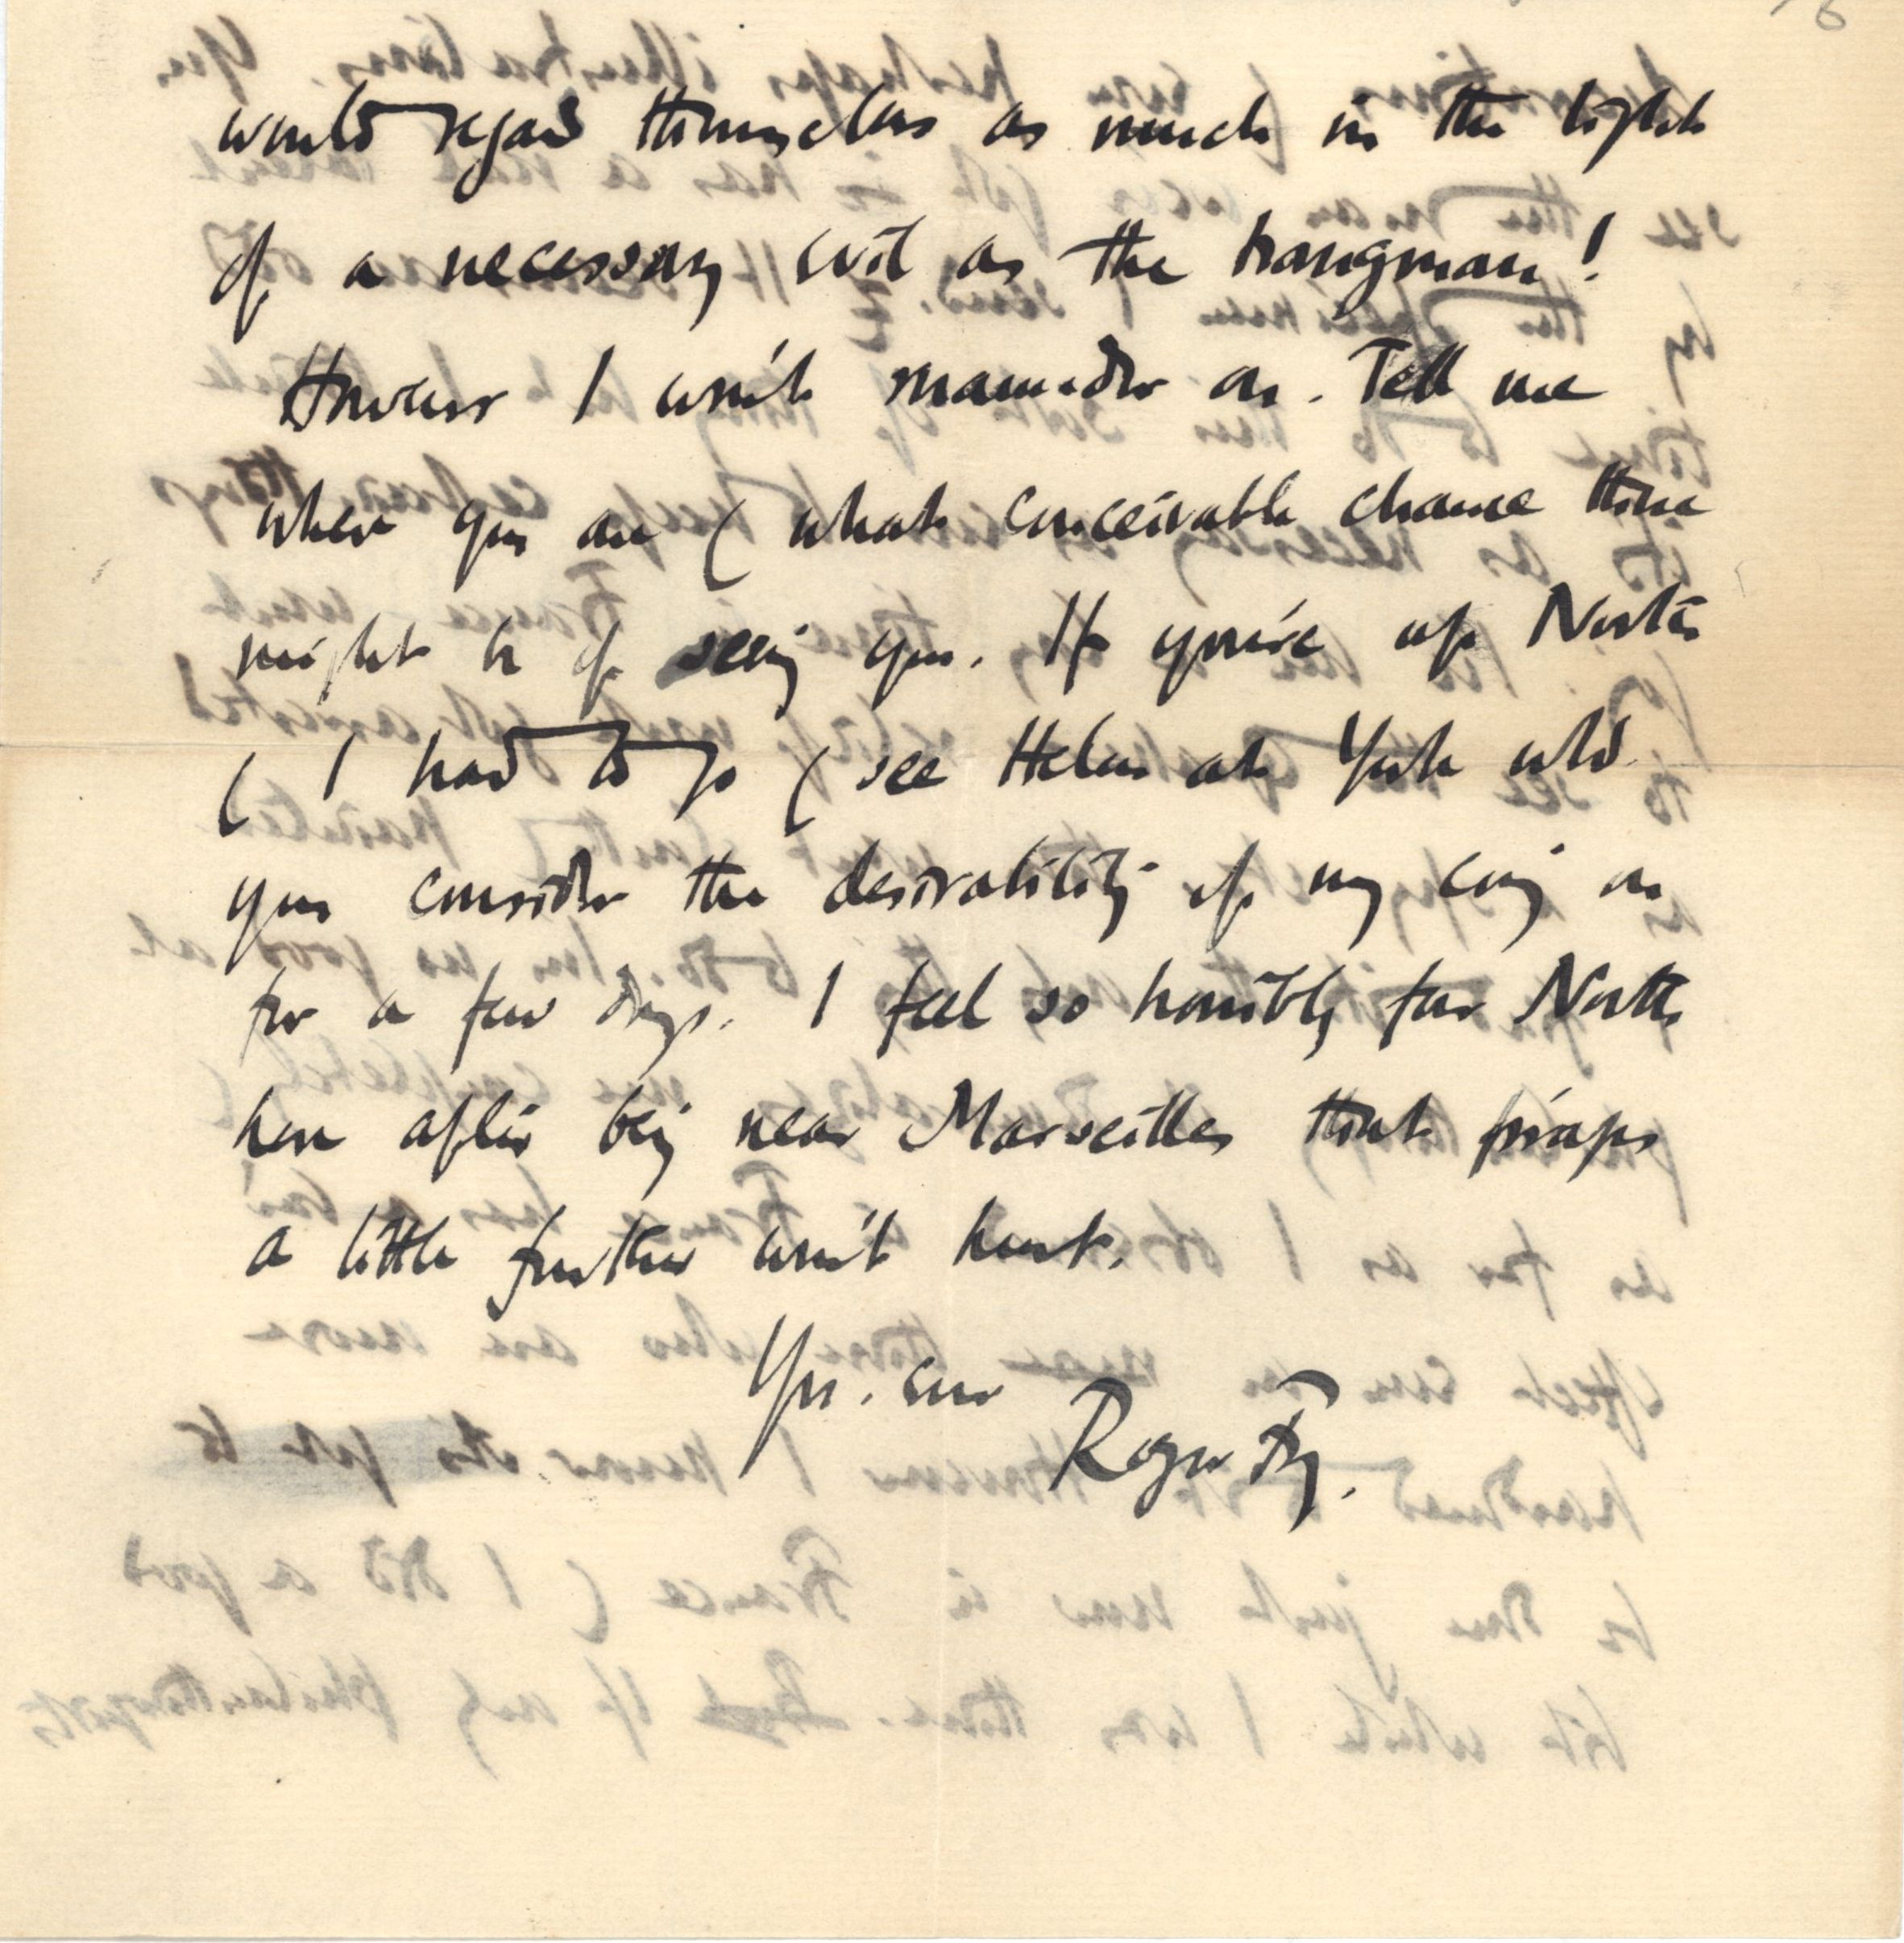 Third page of a letter from Roger Fry to Nathaniel Wedd, 28 July 1915, concerning his visit to France. [NW/2/27 - Omega letterhead removed]